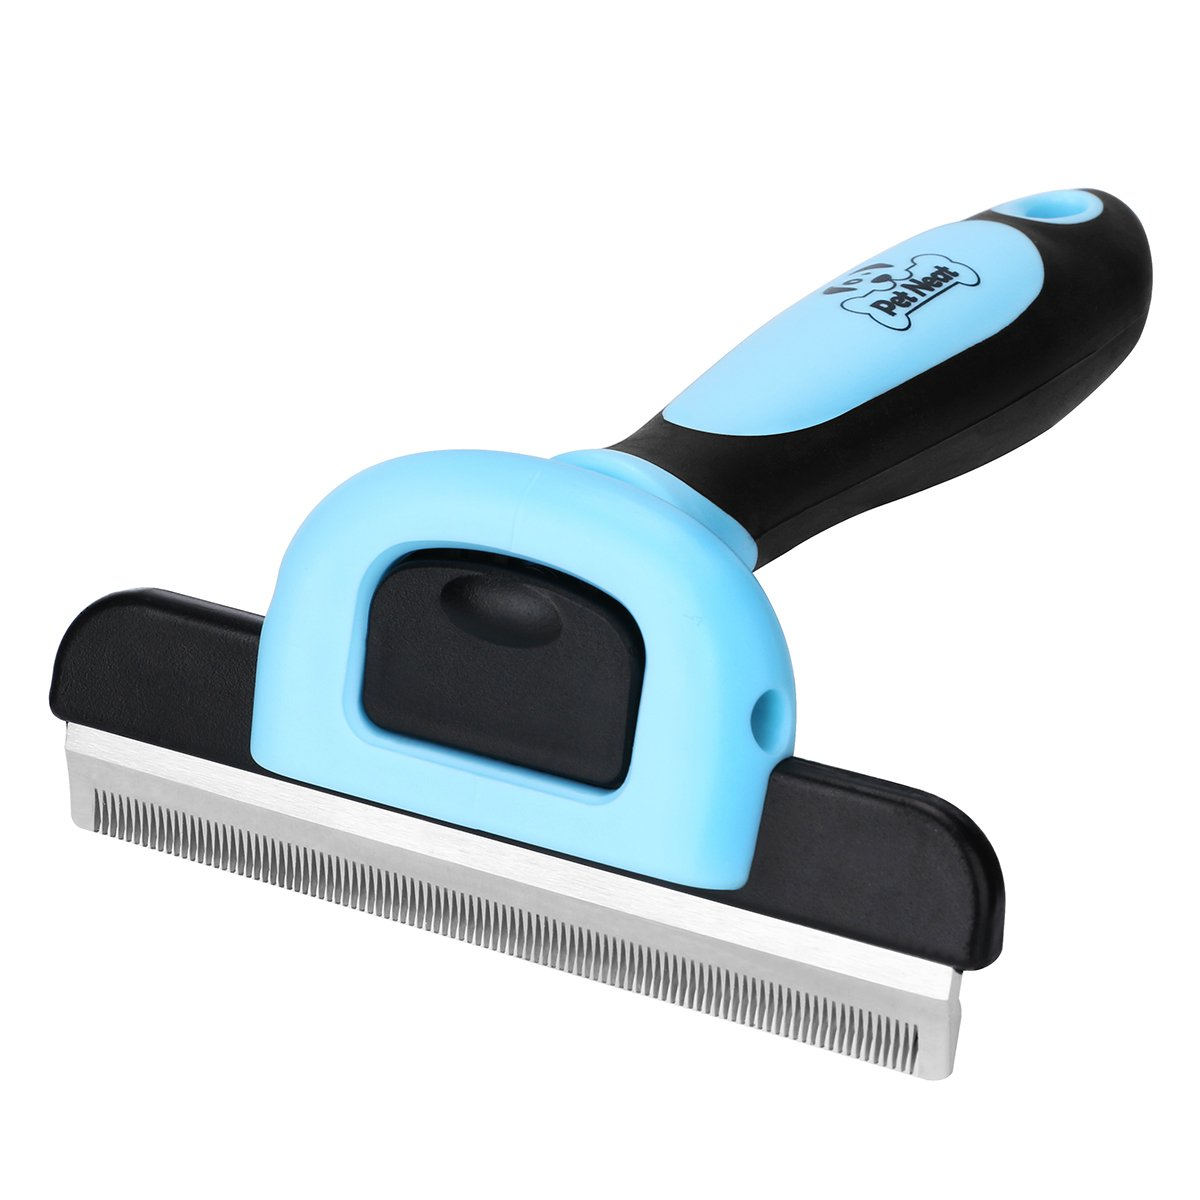 Pet Grooming Brush Effectively Reduces Shedding by Up to 95% Professional Deshedding Tool for Dogs & Cats by Pet Neat